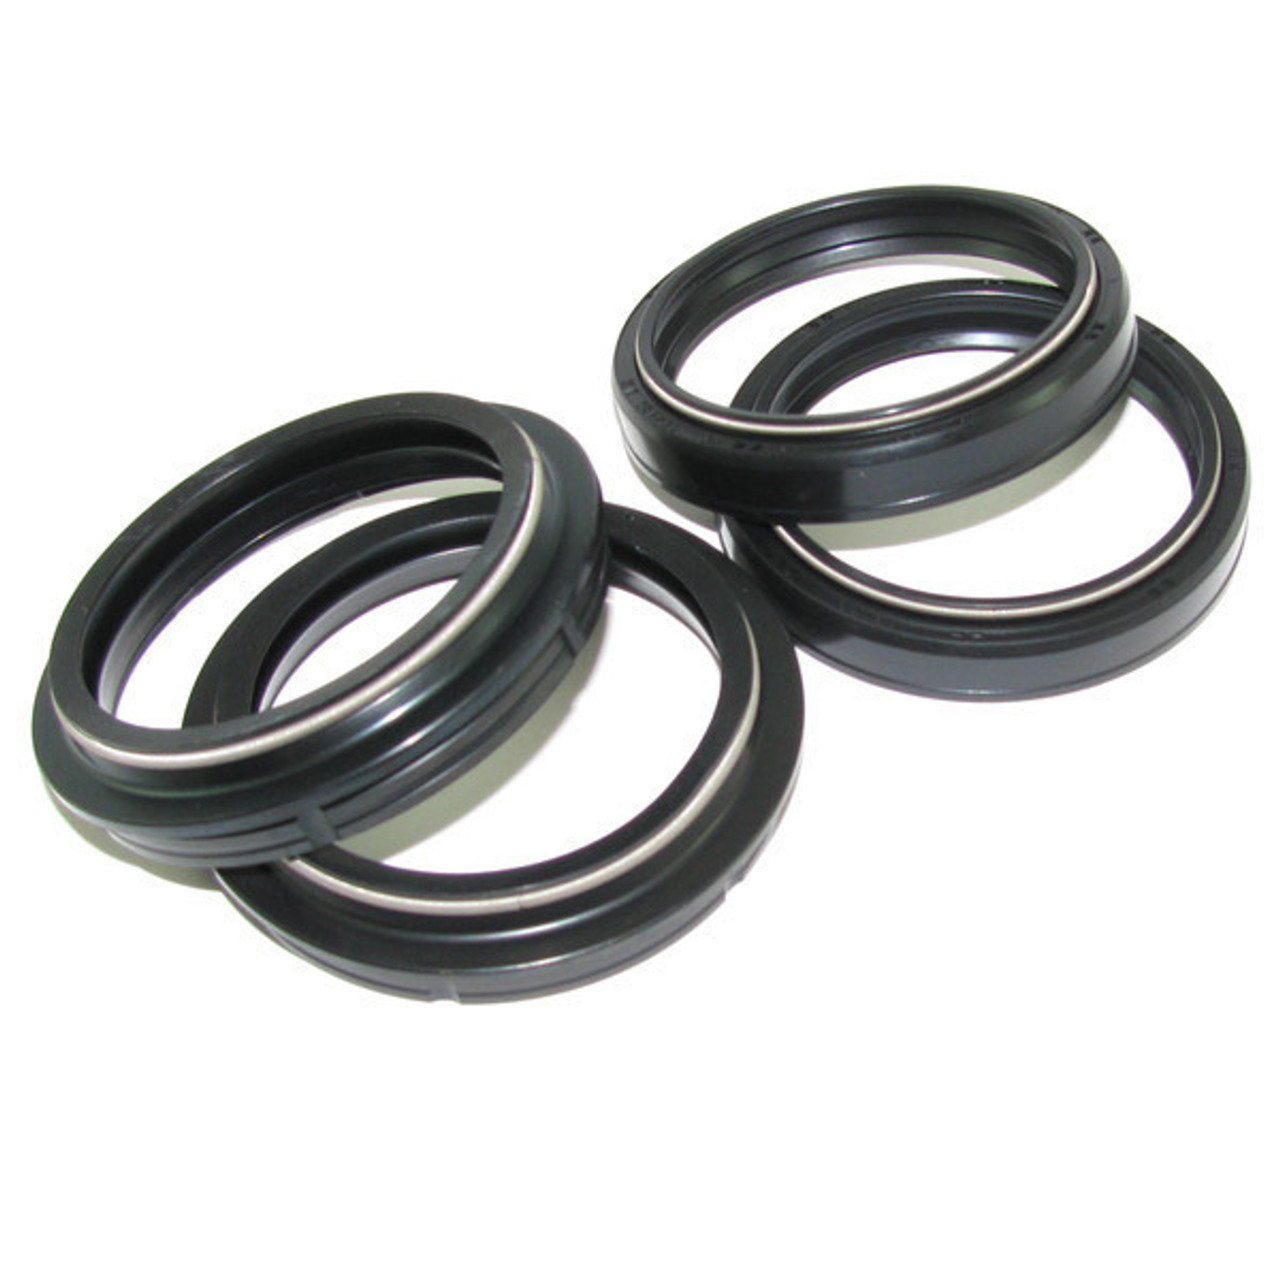 All Balls 56-121 Fork and Dust Seal Kit by All Balls